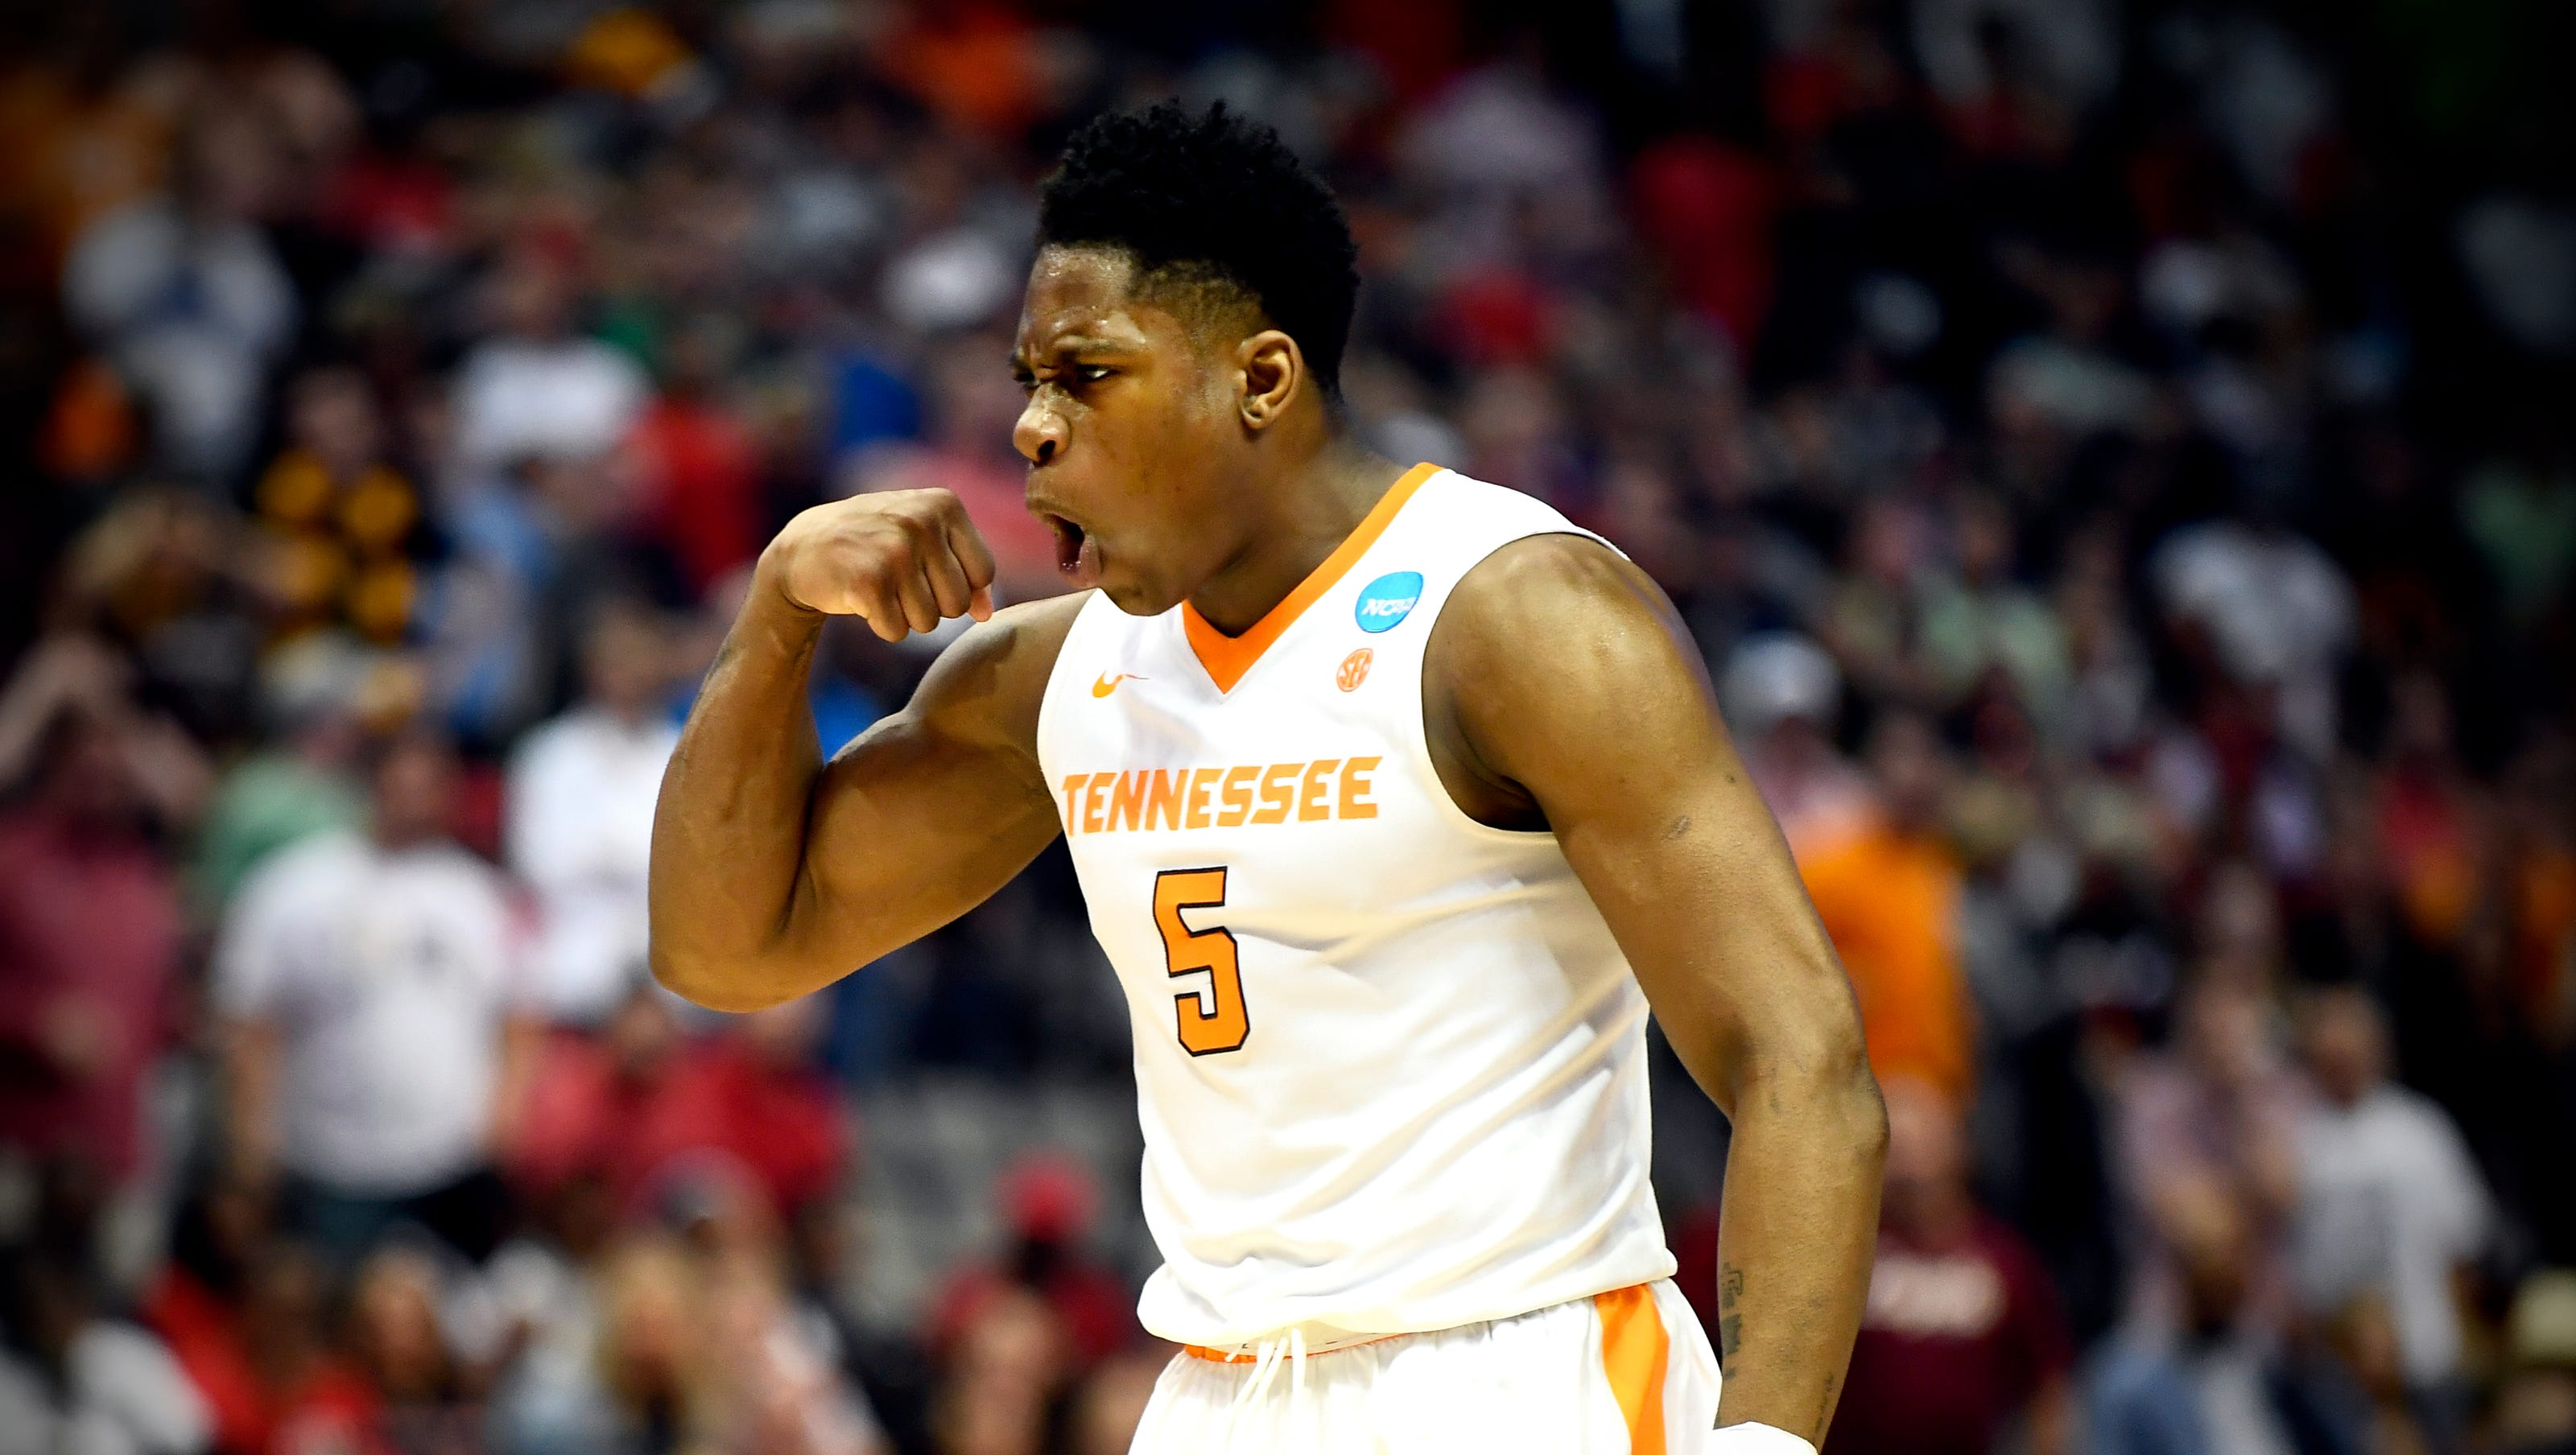 Get a summary of the Tennessee Volunteers vs LSU Tigers basketball game